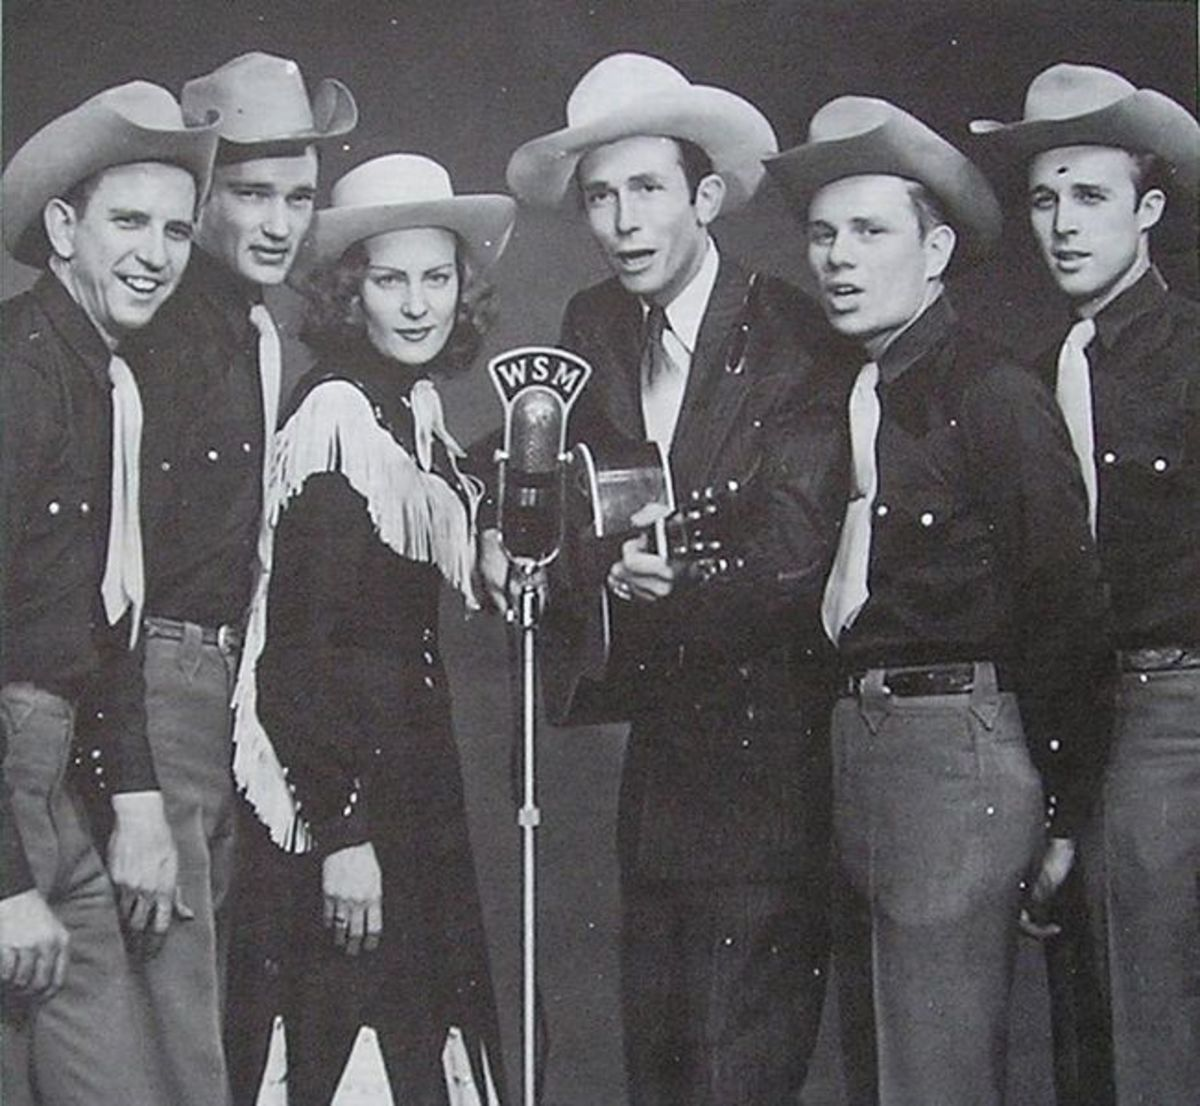 Hank Williams, Audrey Sheppard Williams, and the Drifting Cowboys Band (1951-MGM Records)